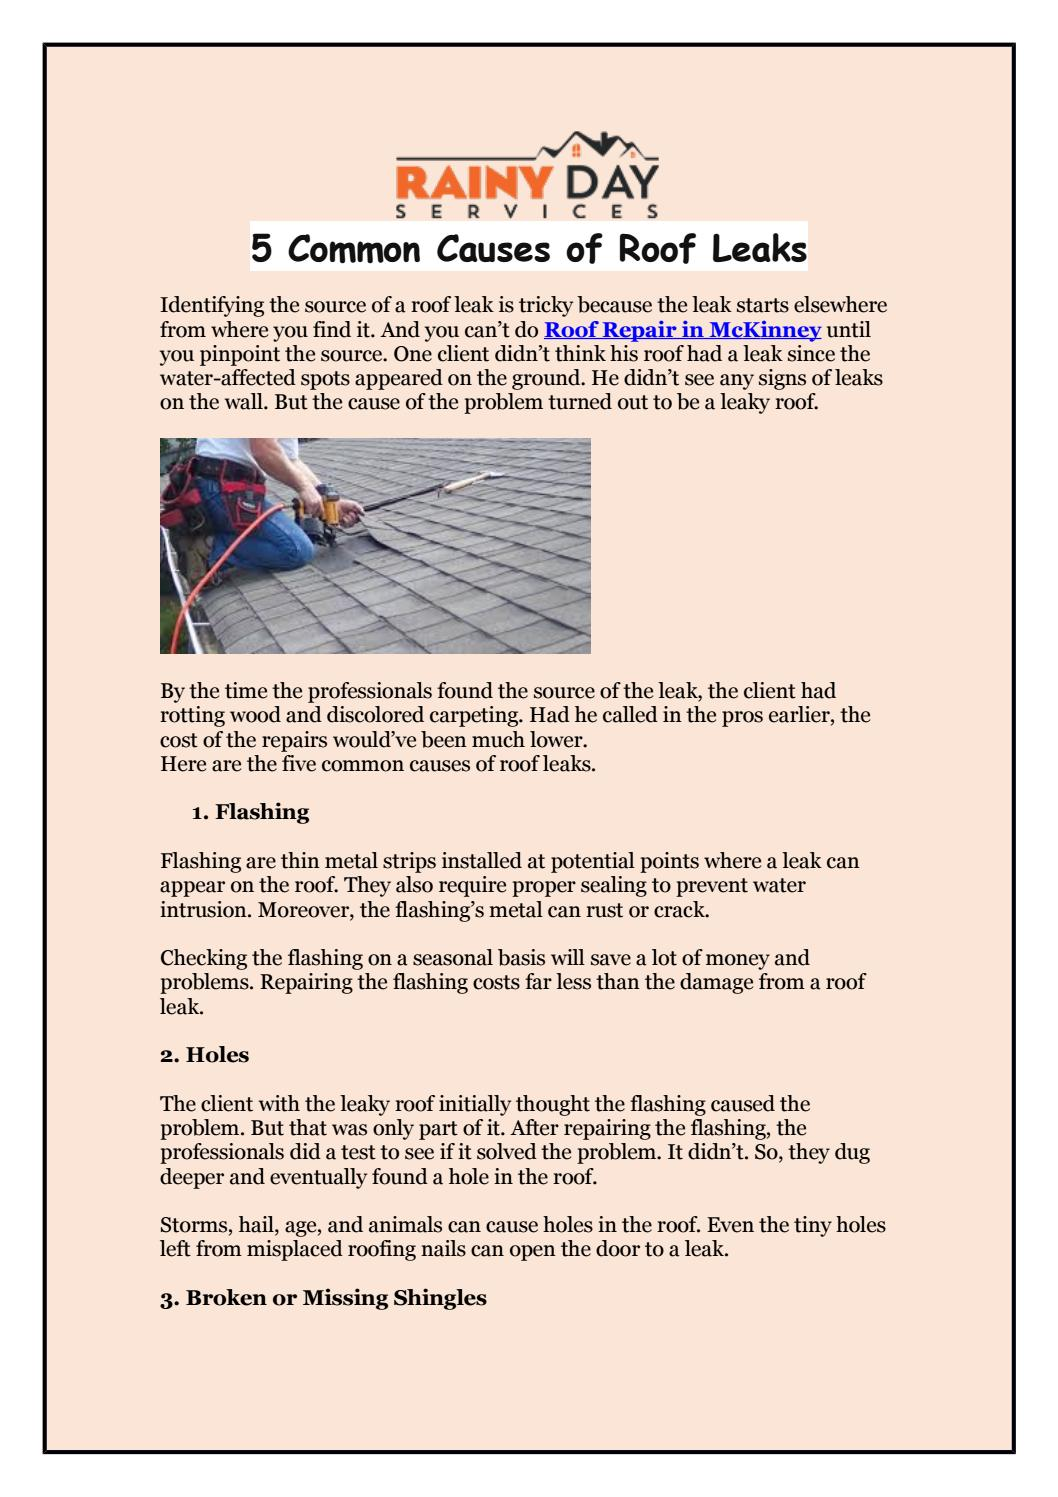 5 Common Causes Of Roof Leaks By Rainydayservices Issuu